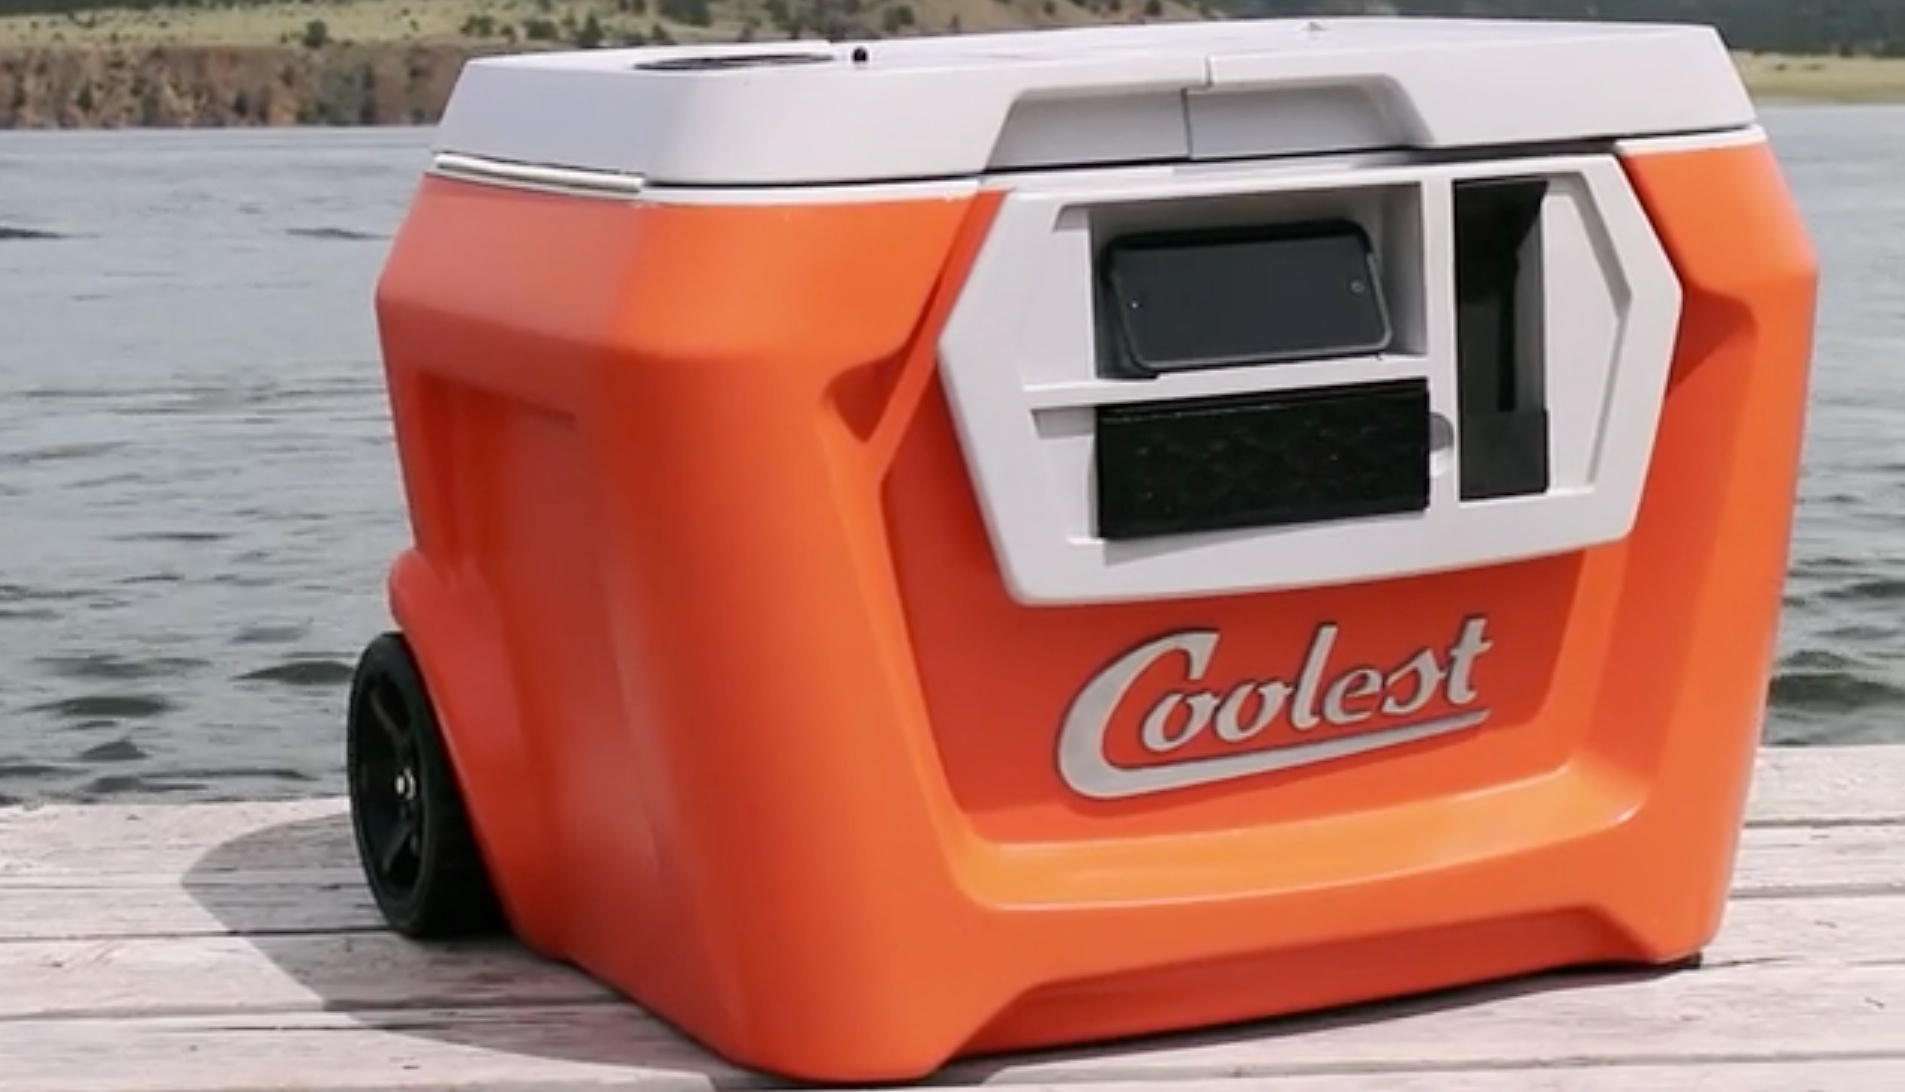 Coolest - The coolest ESKY